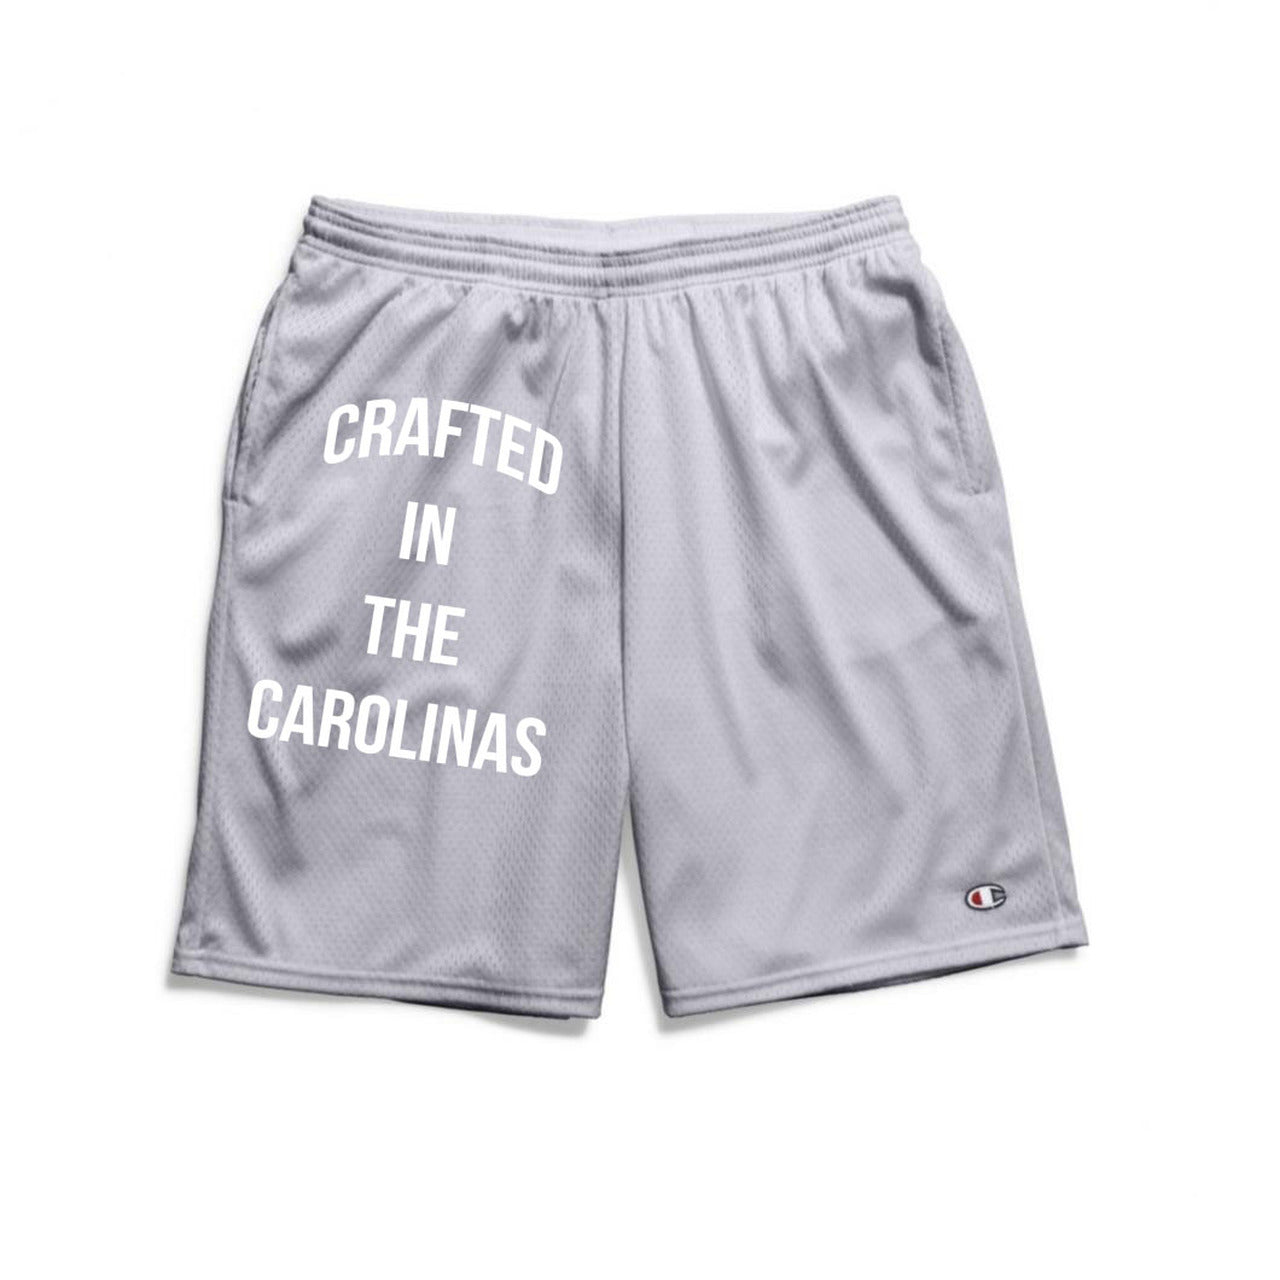 Crafted in the Carolinas Champion Gym Shorts With Pockets- Grey